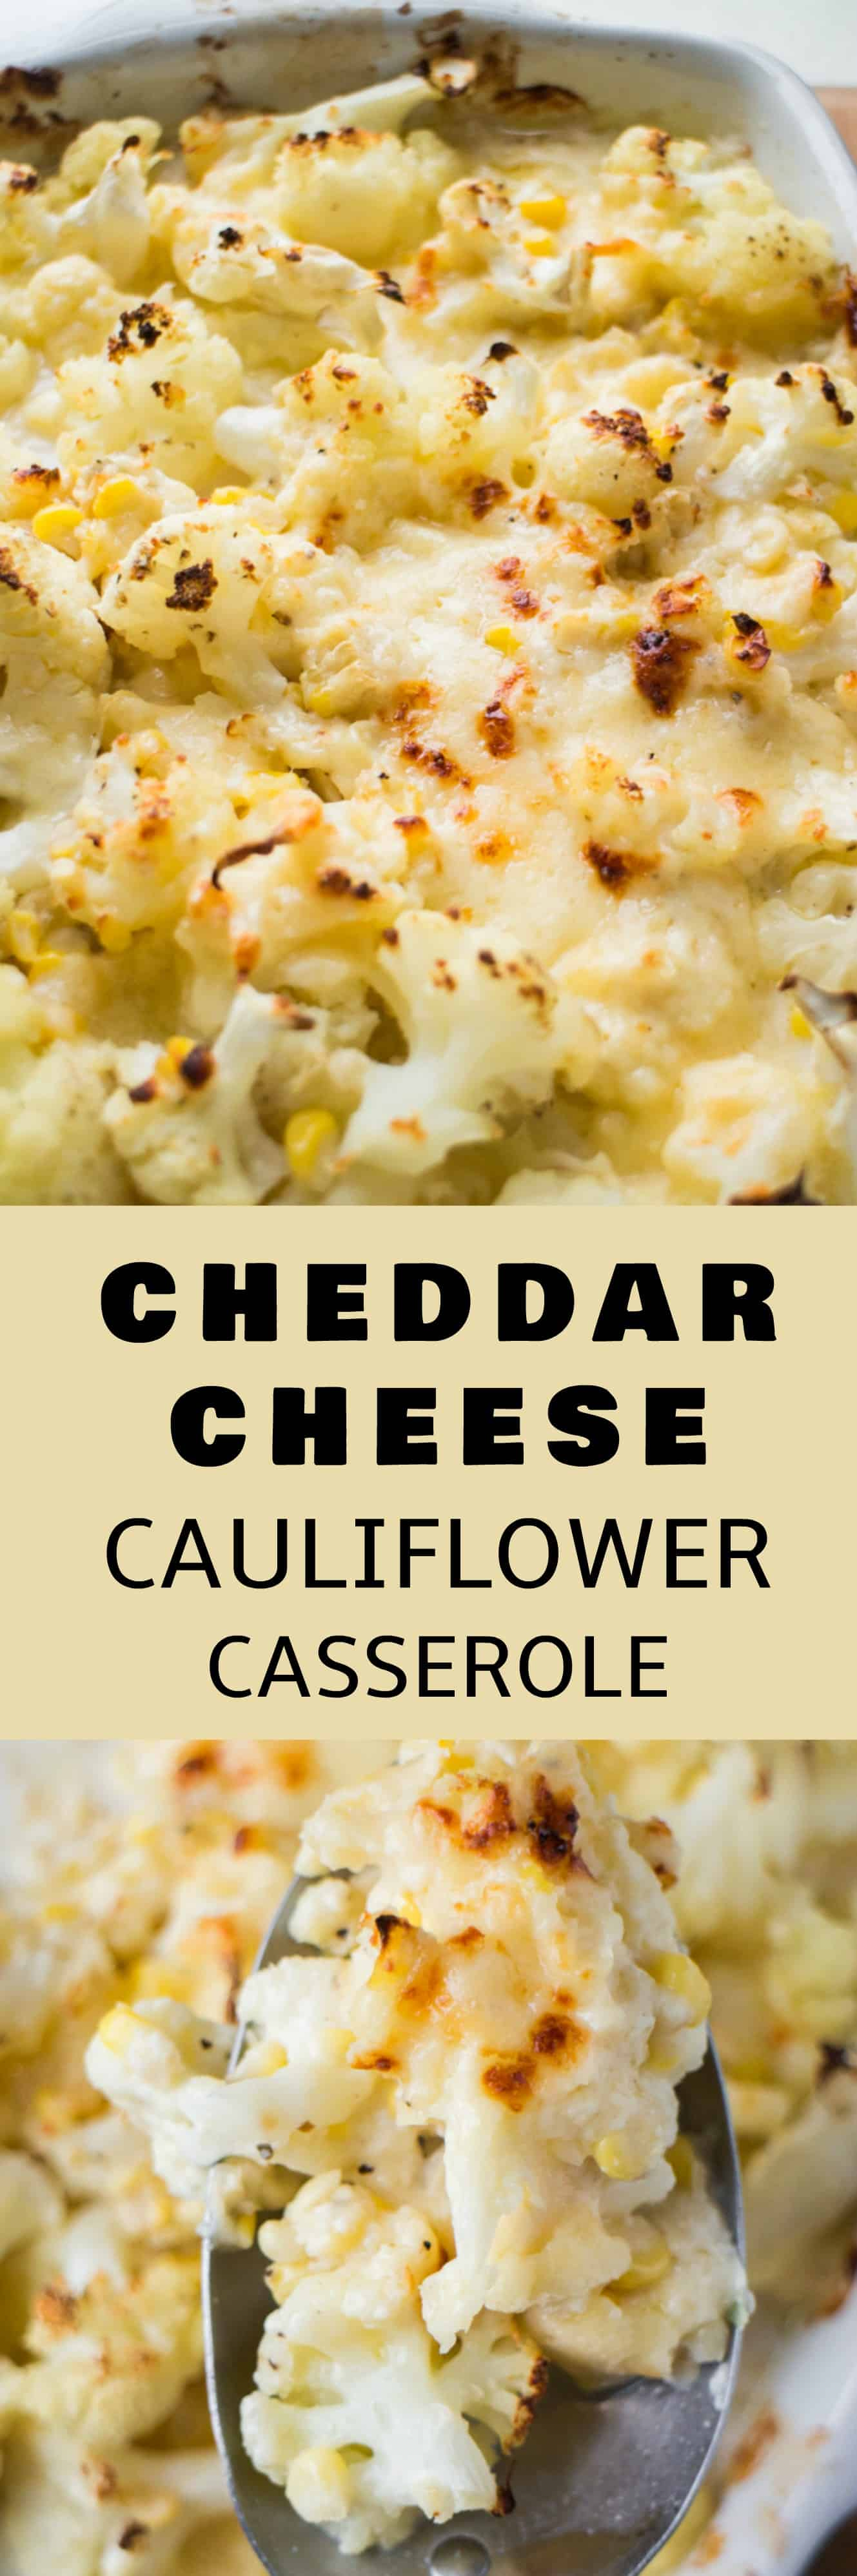 BAKED Cheddar Cheese Cauliflower Casserole recipe! This Loaded Cauliflower Cheese Bake is vegetarian and easy to make. This low carb, keto casserole can be either a side dish or a main dish!